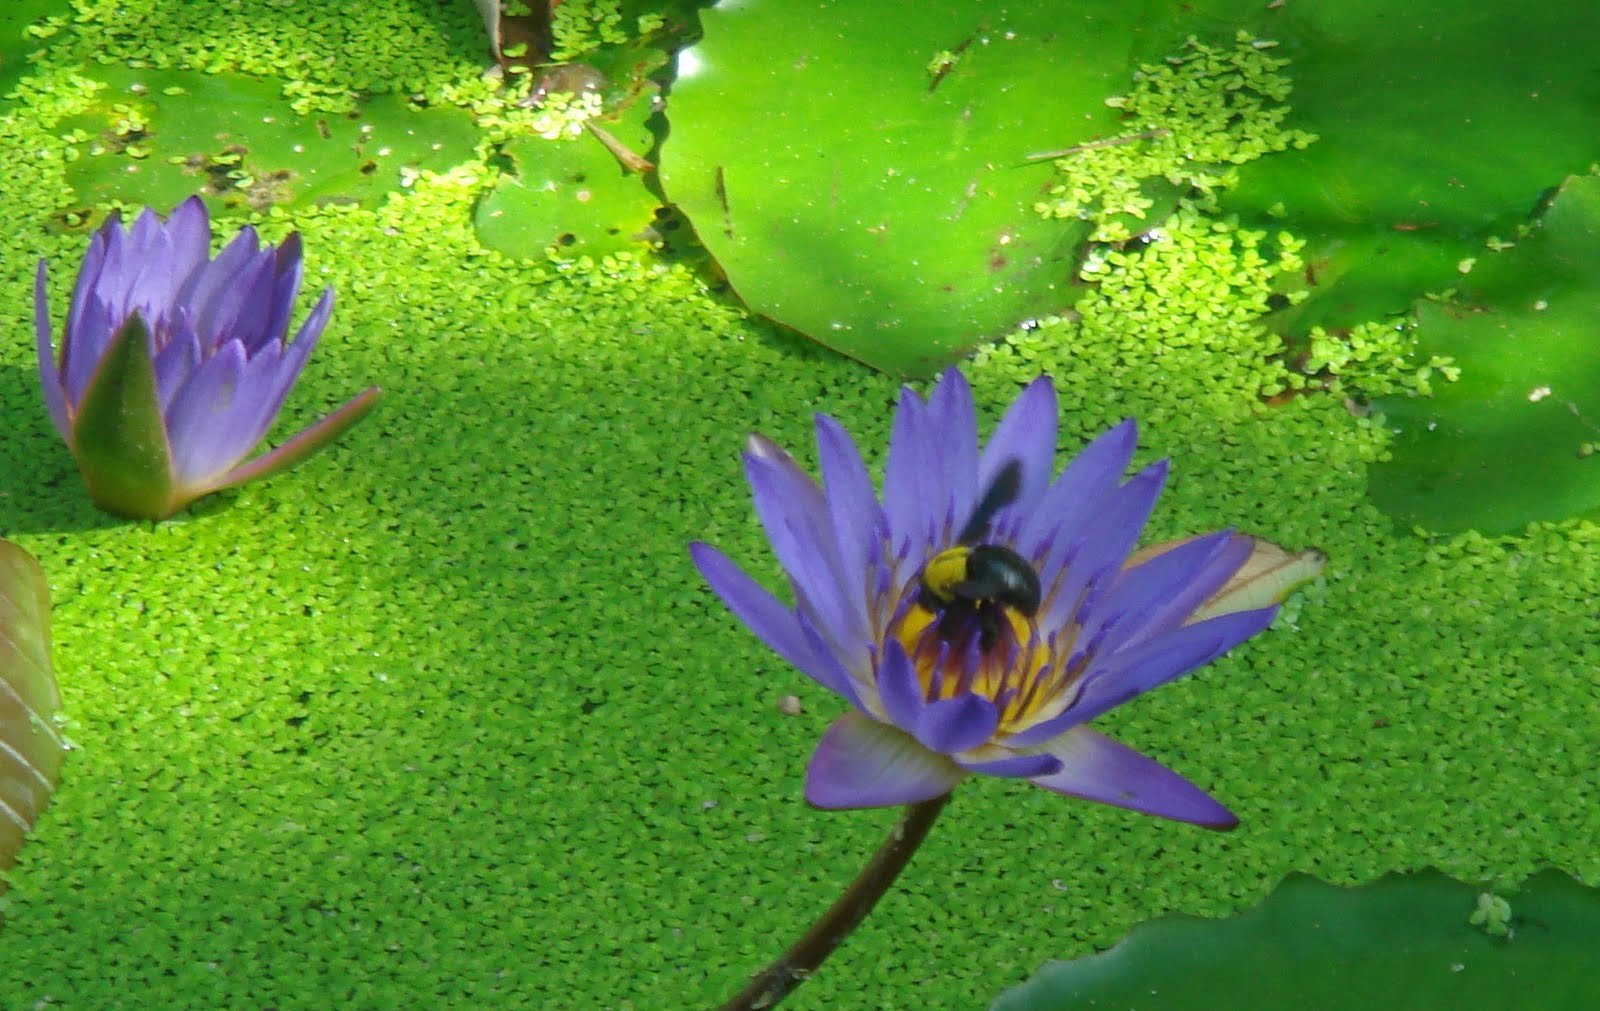 Learn the flowers the lotus life cycle the lotus and the lily pictured here have a major difference in that the lotuss leaves rise out of the water below and as described here but see izmirmasajfo